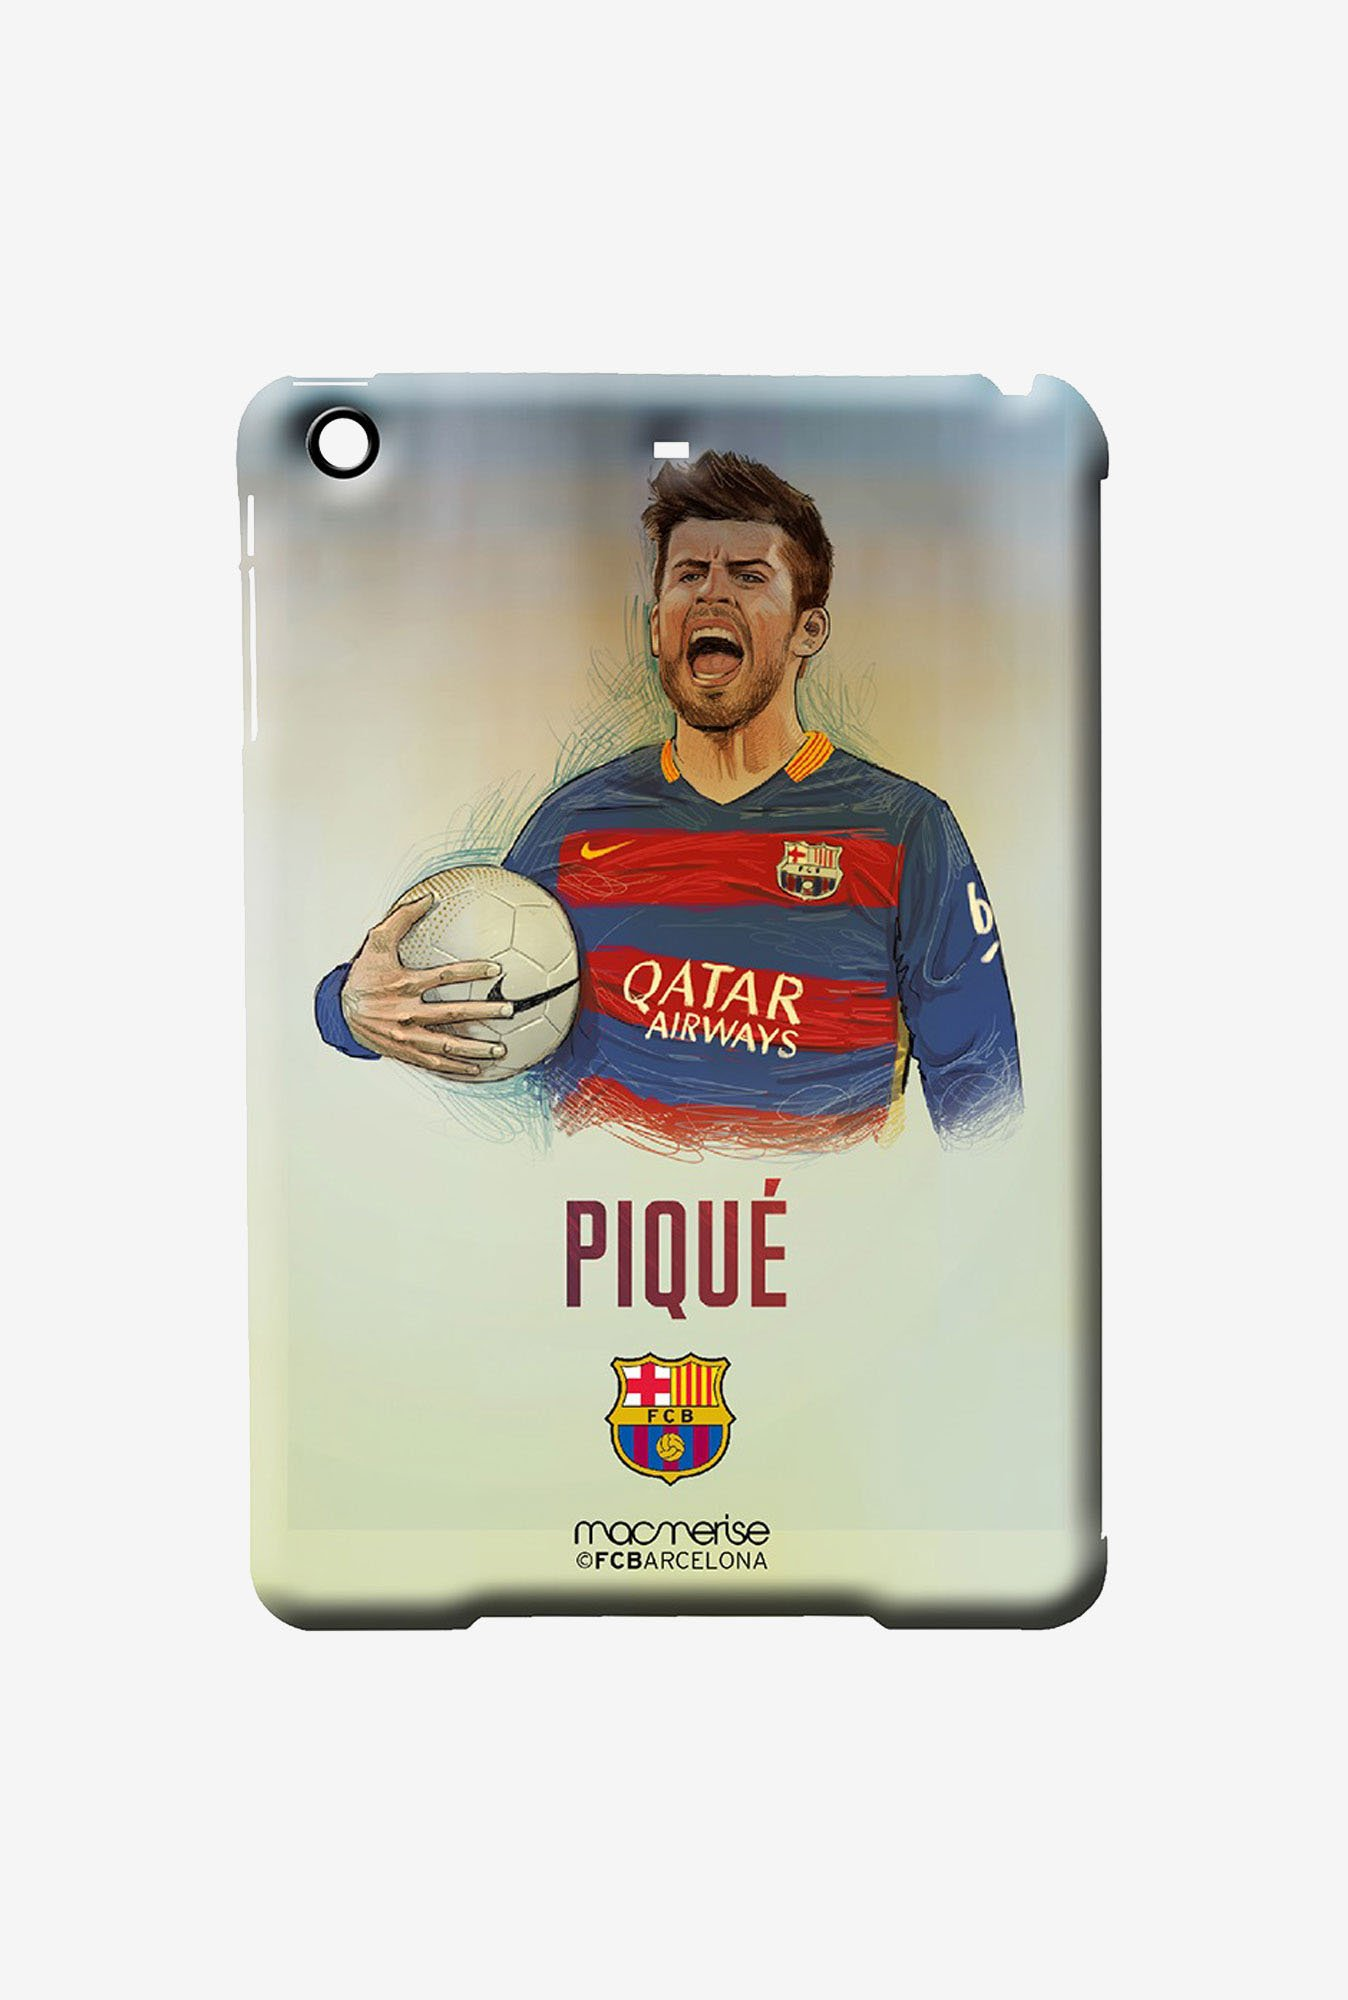 Macmerise Illustrated Pique Pro Case for iPad 2/3/4